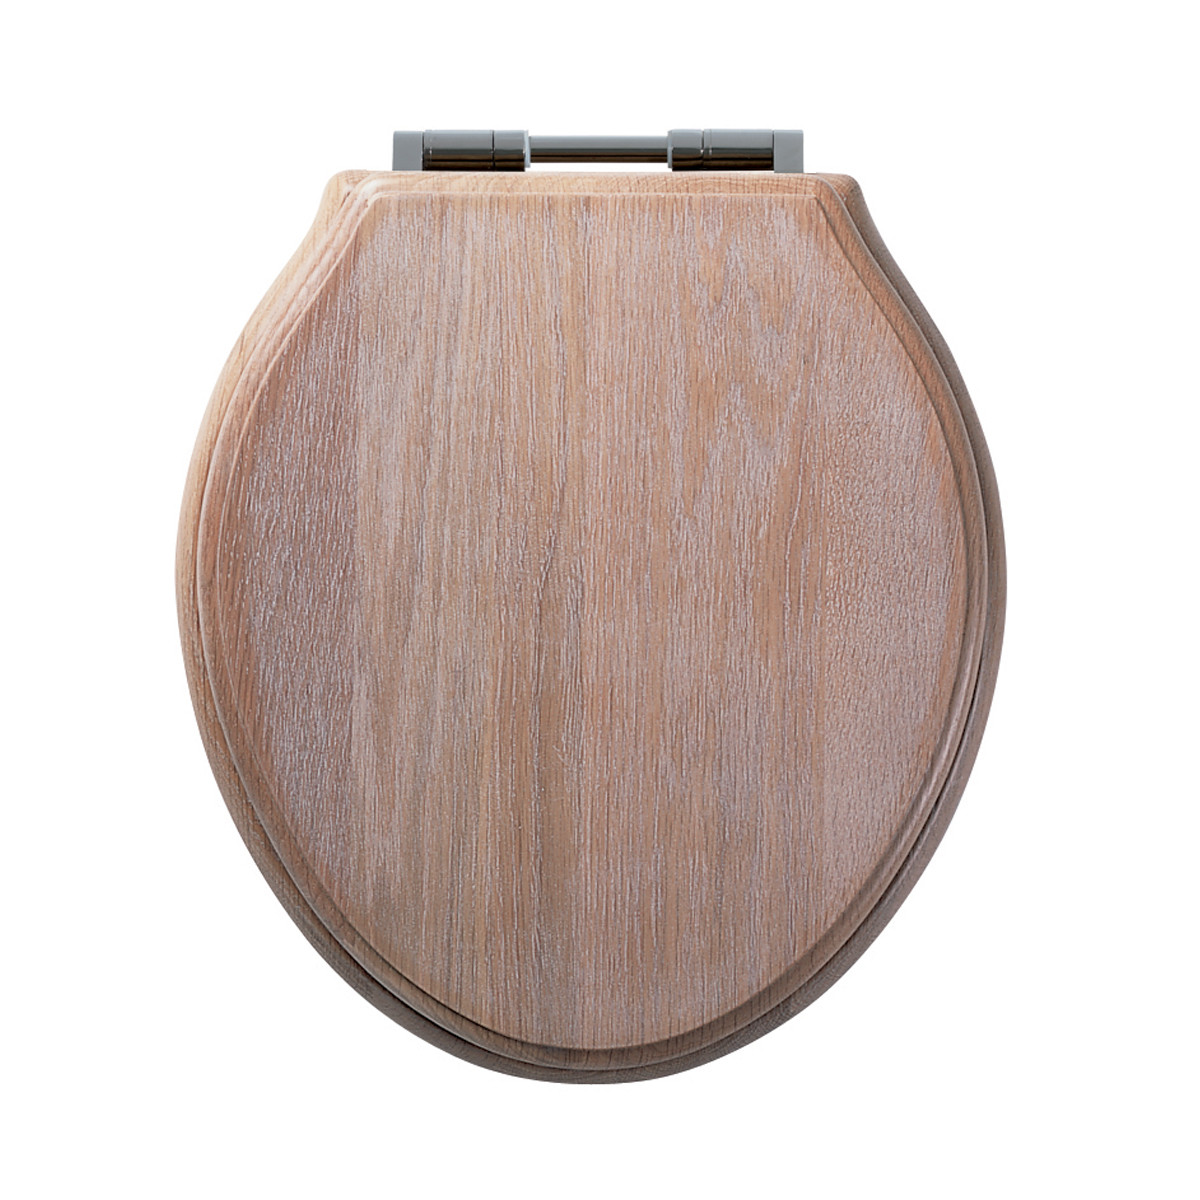 Roper Rhodes Greenwich Solid Wood Limed Oak Soft Close Toilet Seat